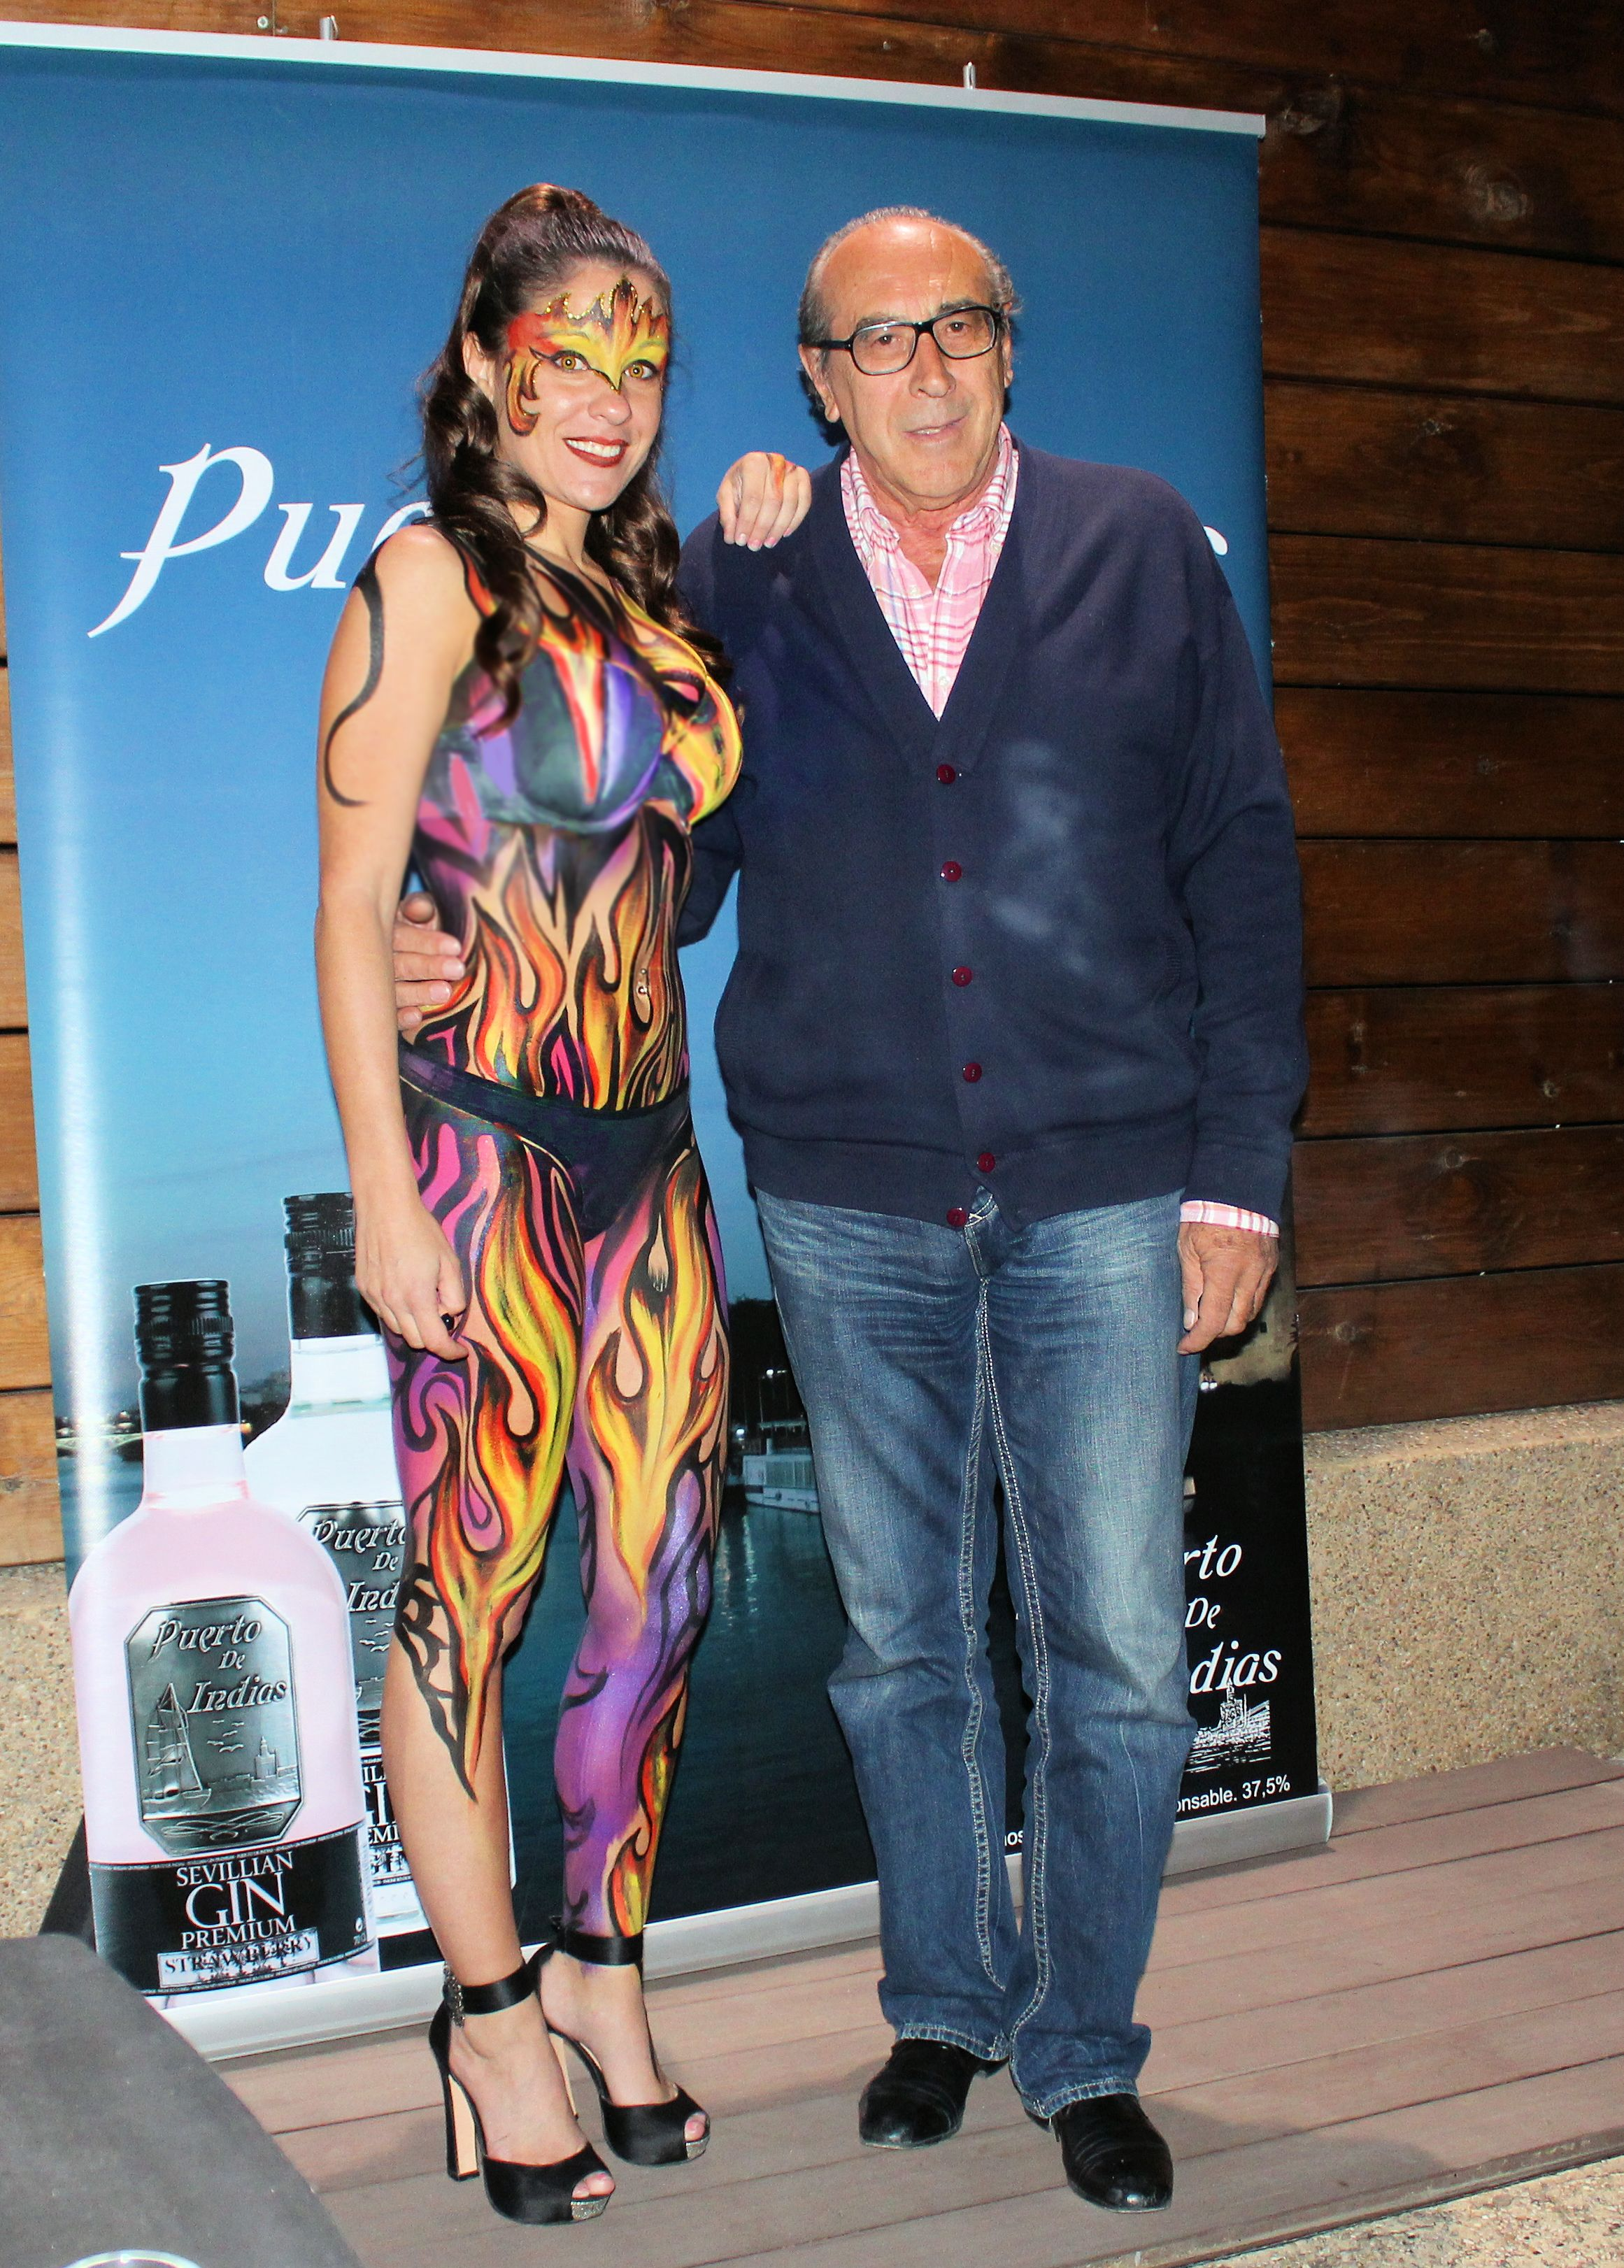 Bodypaint en Madrid inauguración Local en las Rozas.